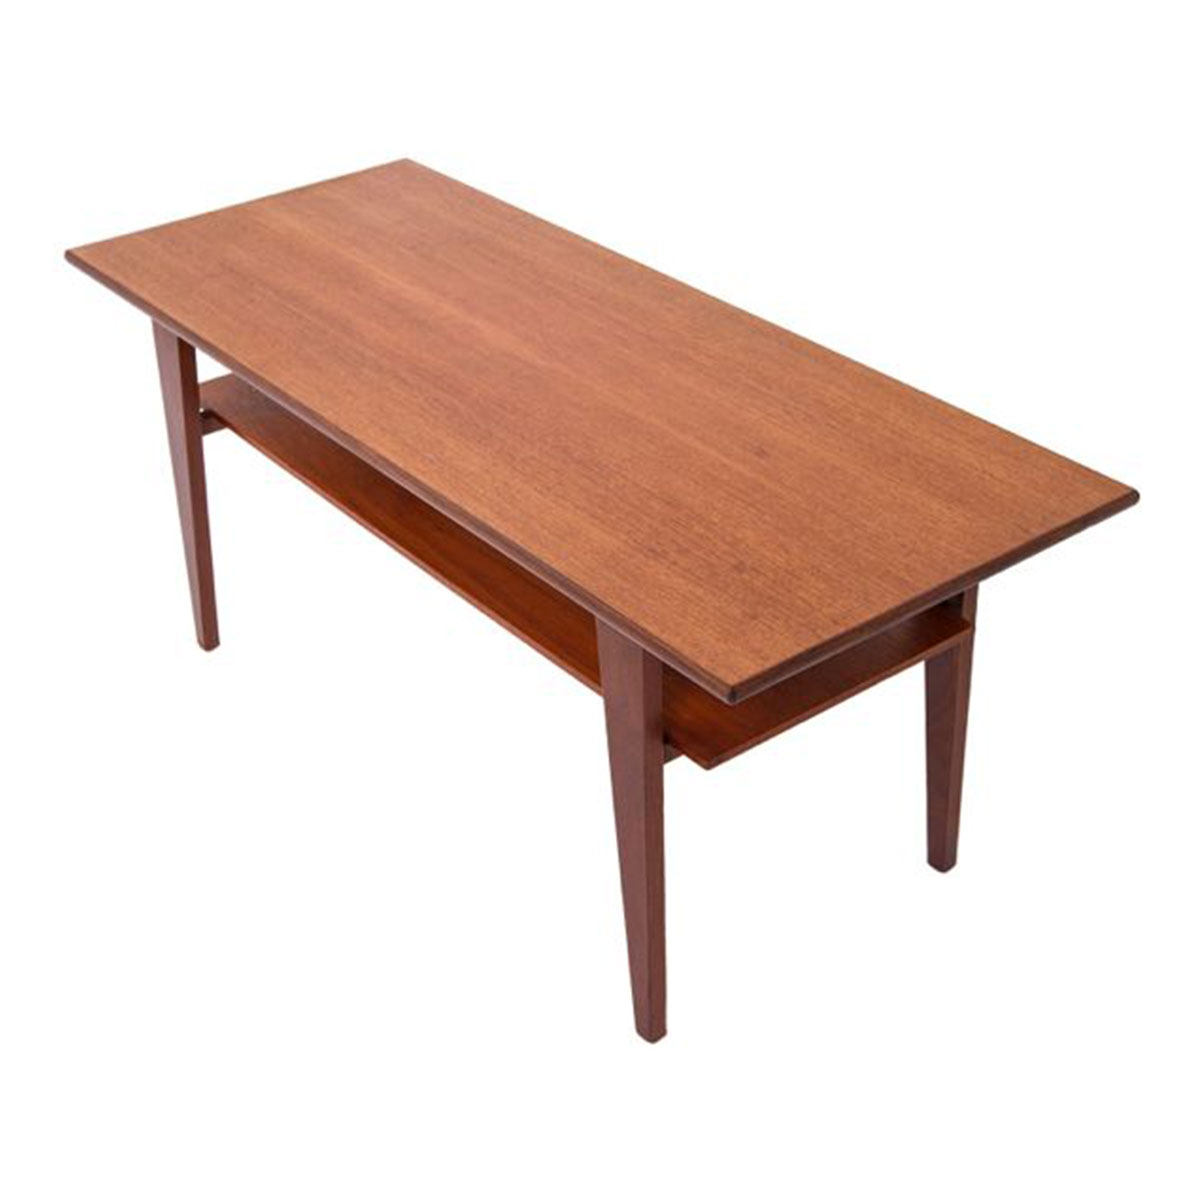 Compact Danish Modern Teak Coffee Table